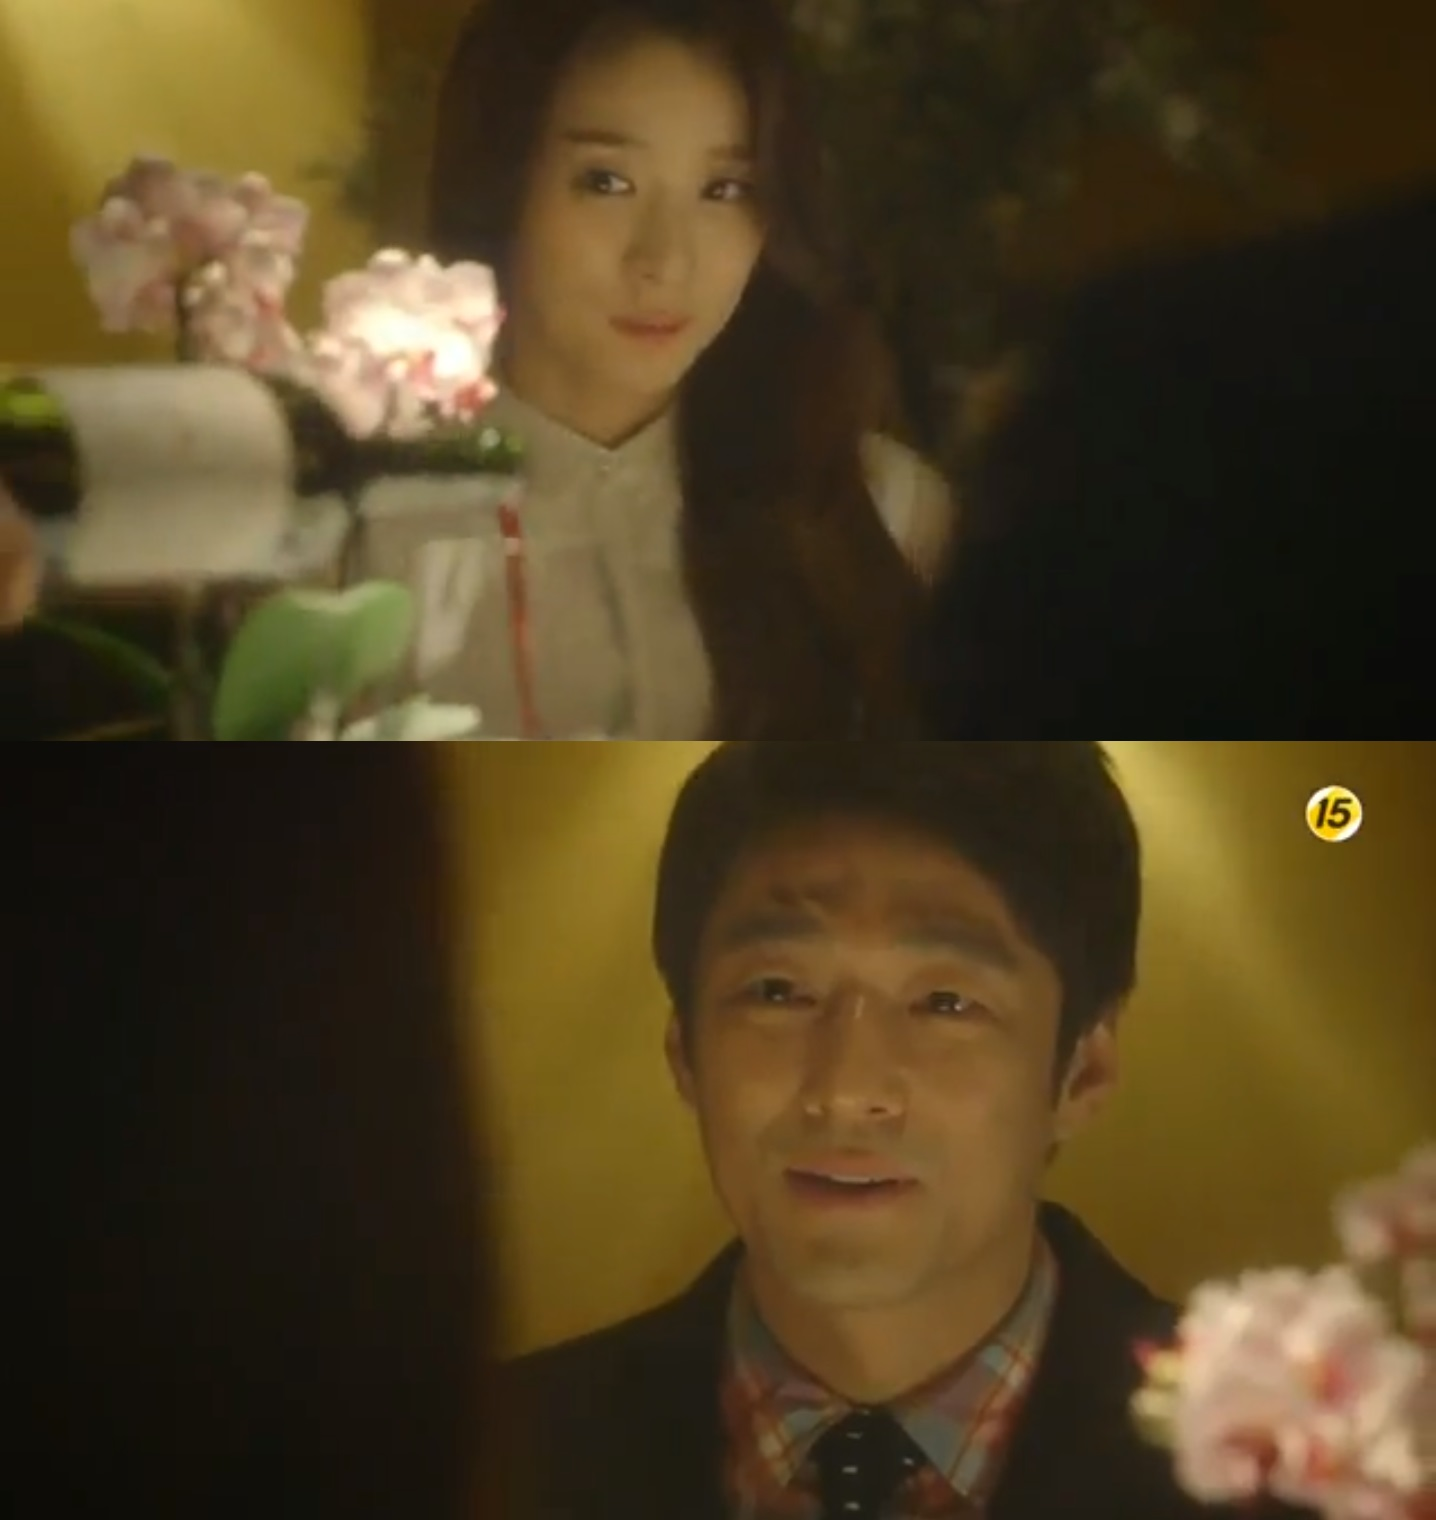 dating agency cyrano oyuncular Uhm tae woong [tüm koreli oyuncular listele]  cyrano dating agency (2010) handphone (2009) chaw (2008) sunny / someone dear is far away (2008.